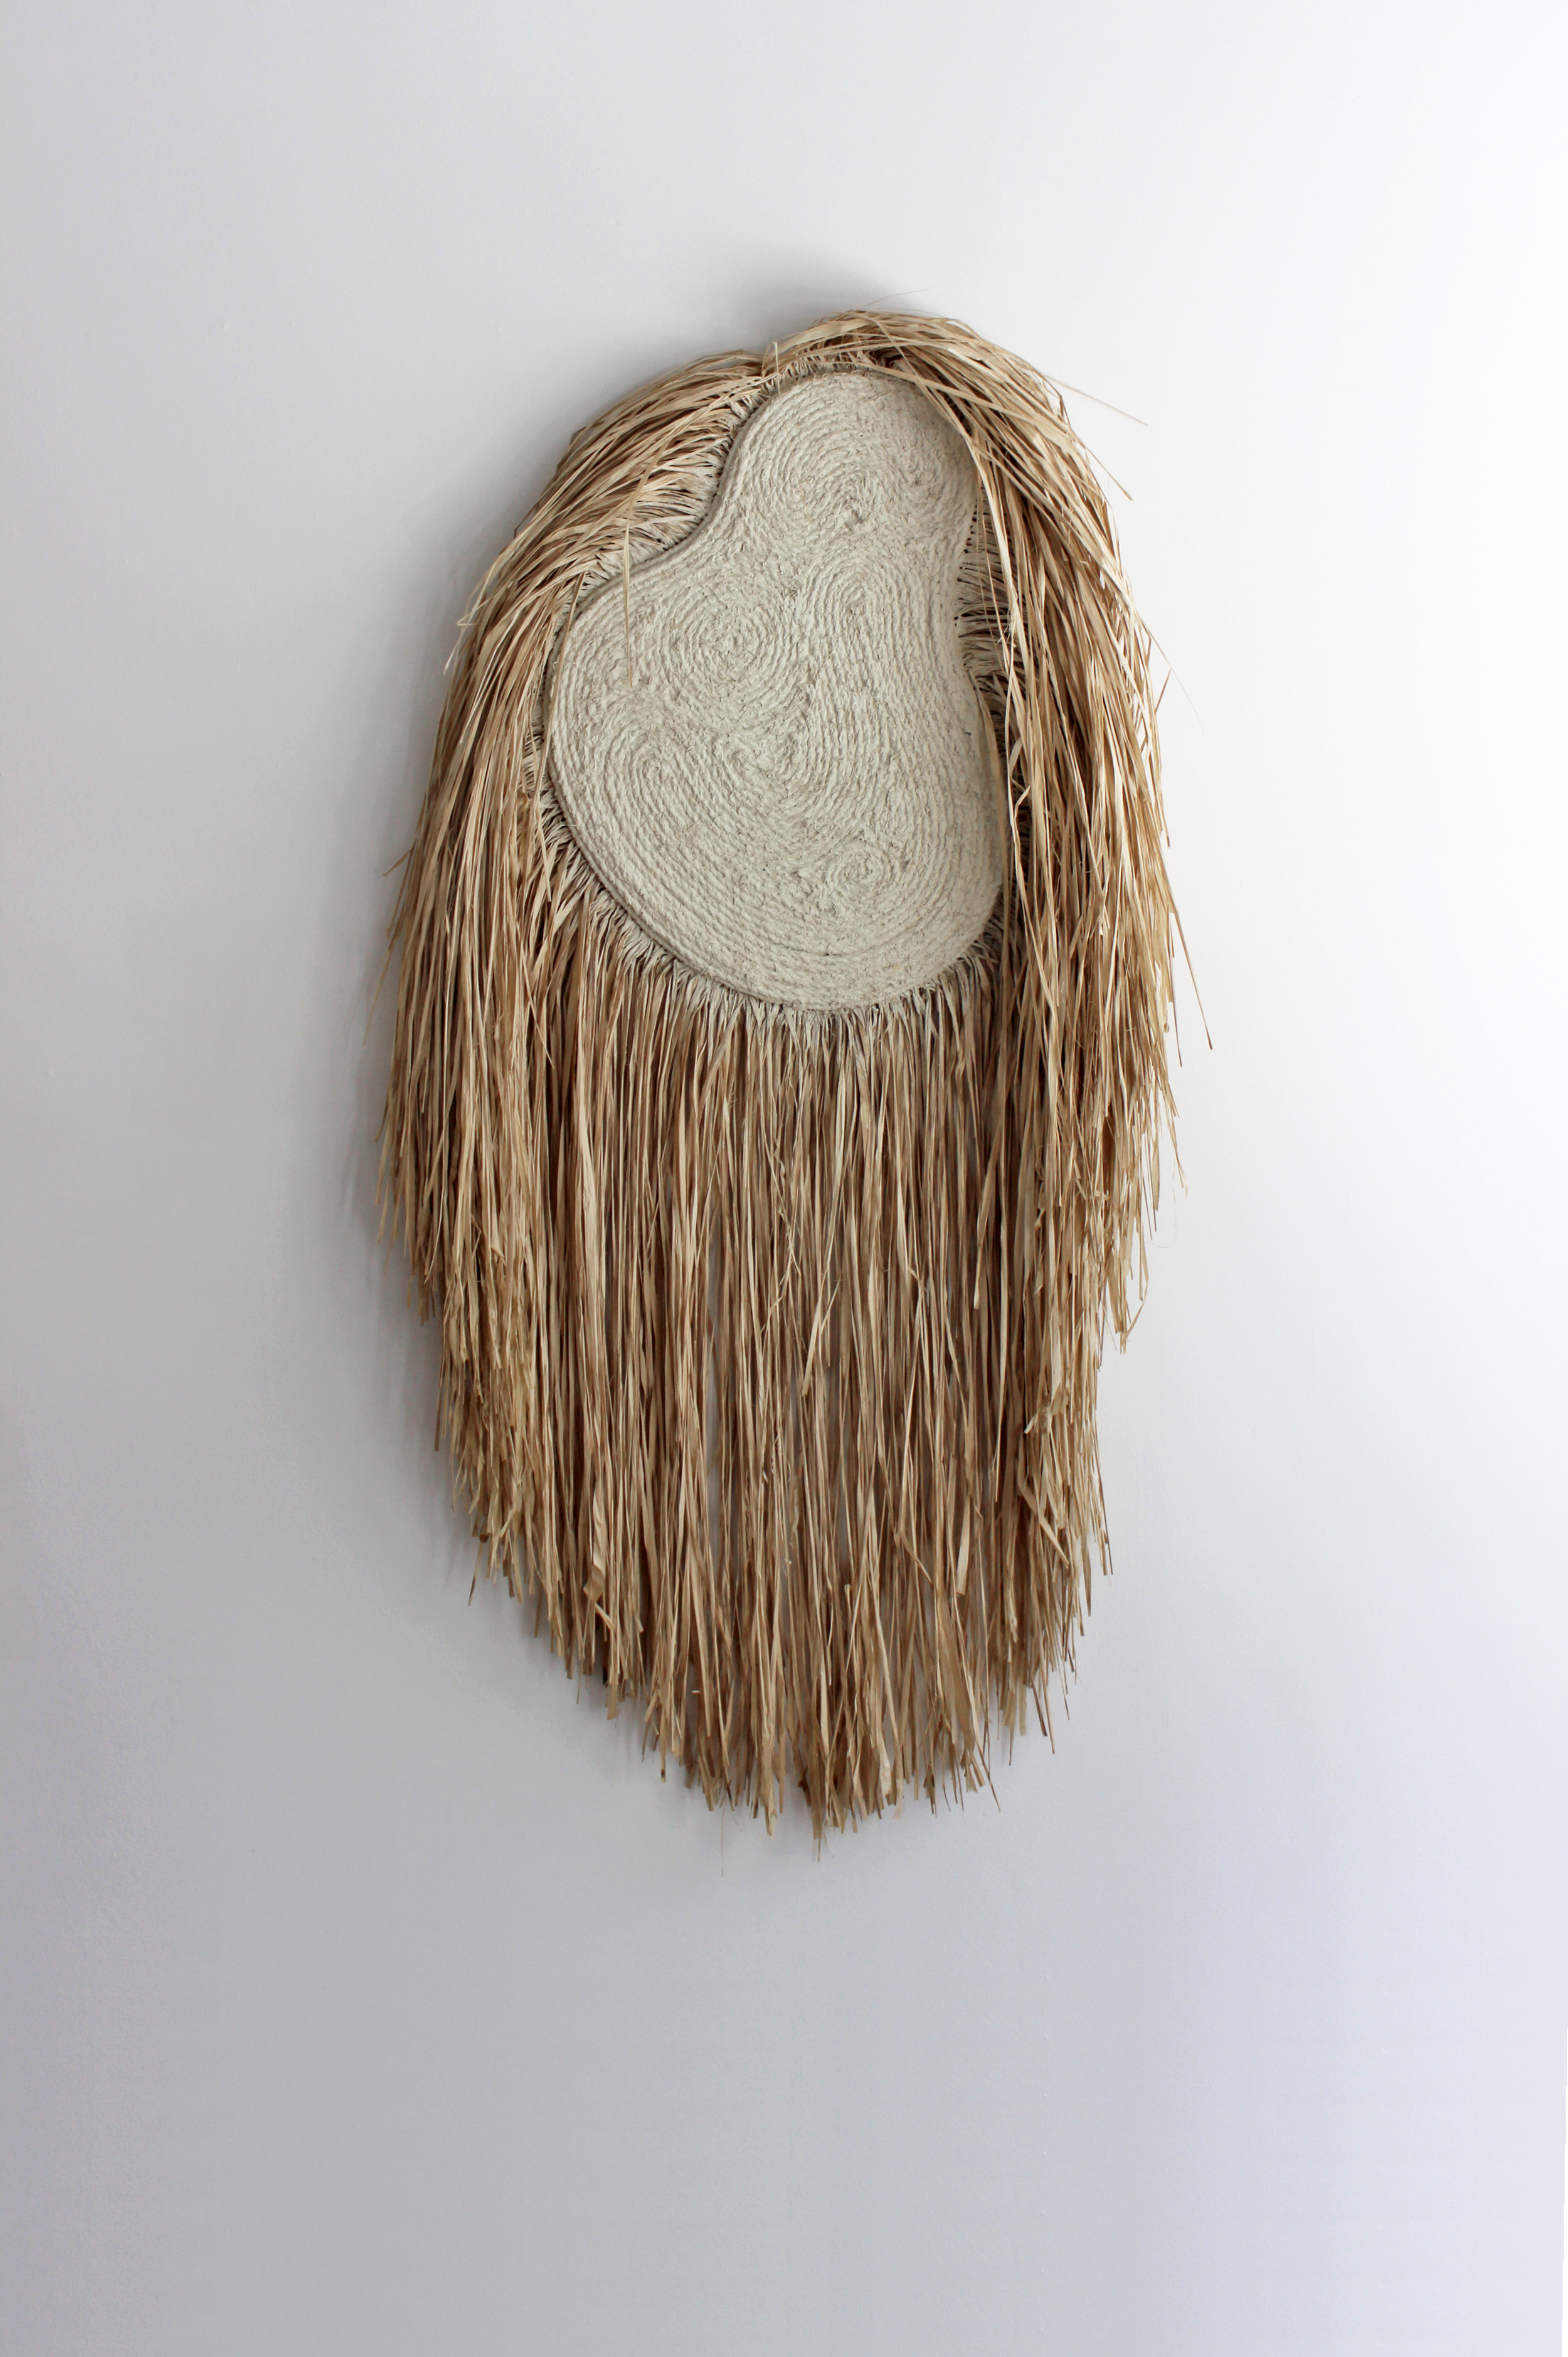 Wildman (white)  , 2019, jute, raffia, grout on wood panel, 36 x 56 inches